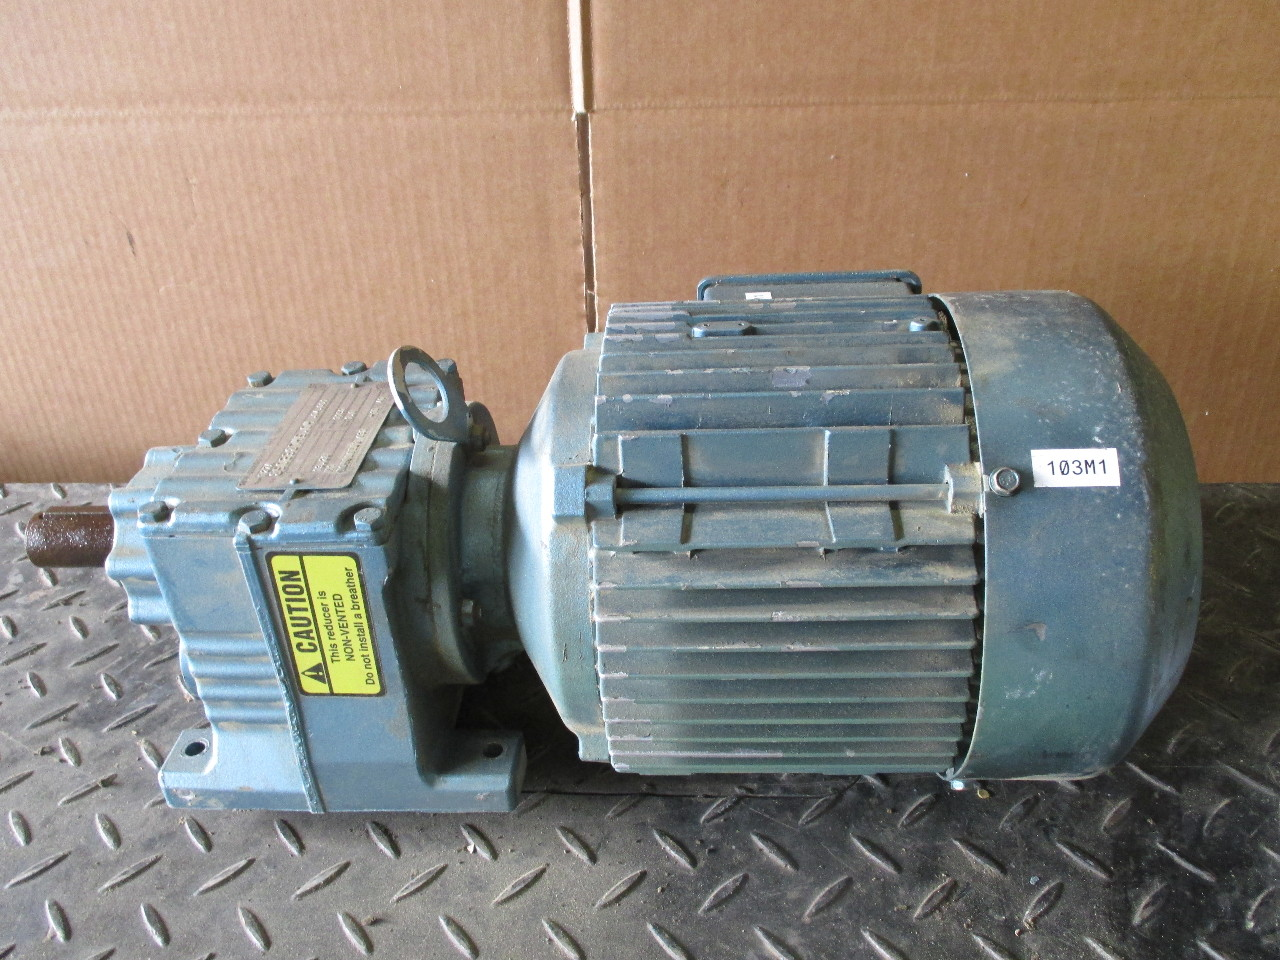 Sew eurodrive r27a inline gear motor 1720 rpm 2 hp dft90l4 for Sew motors and drives